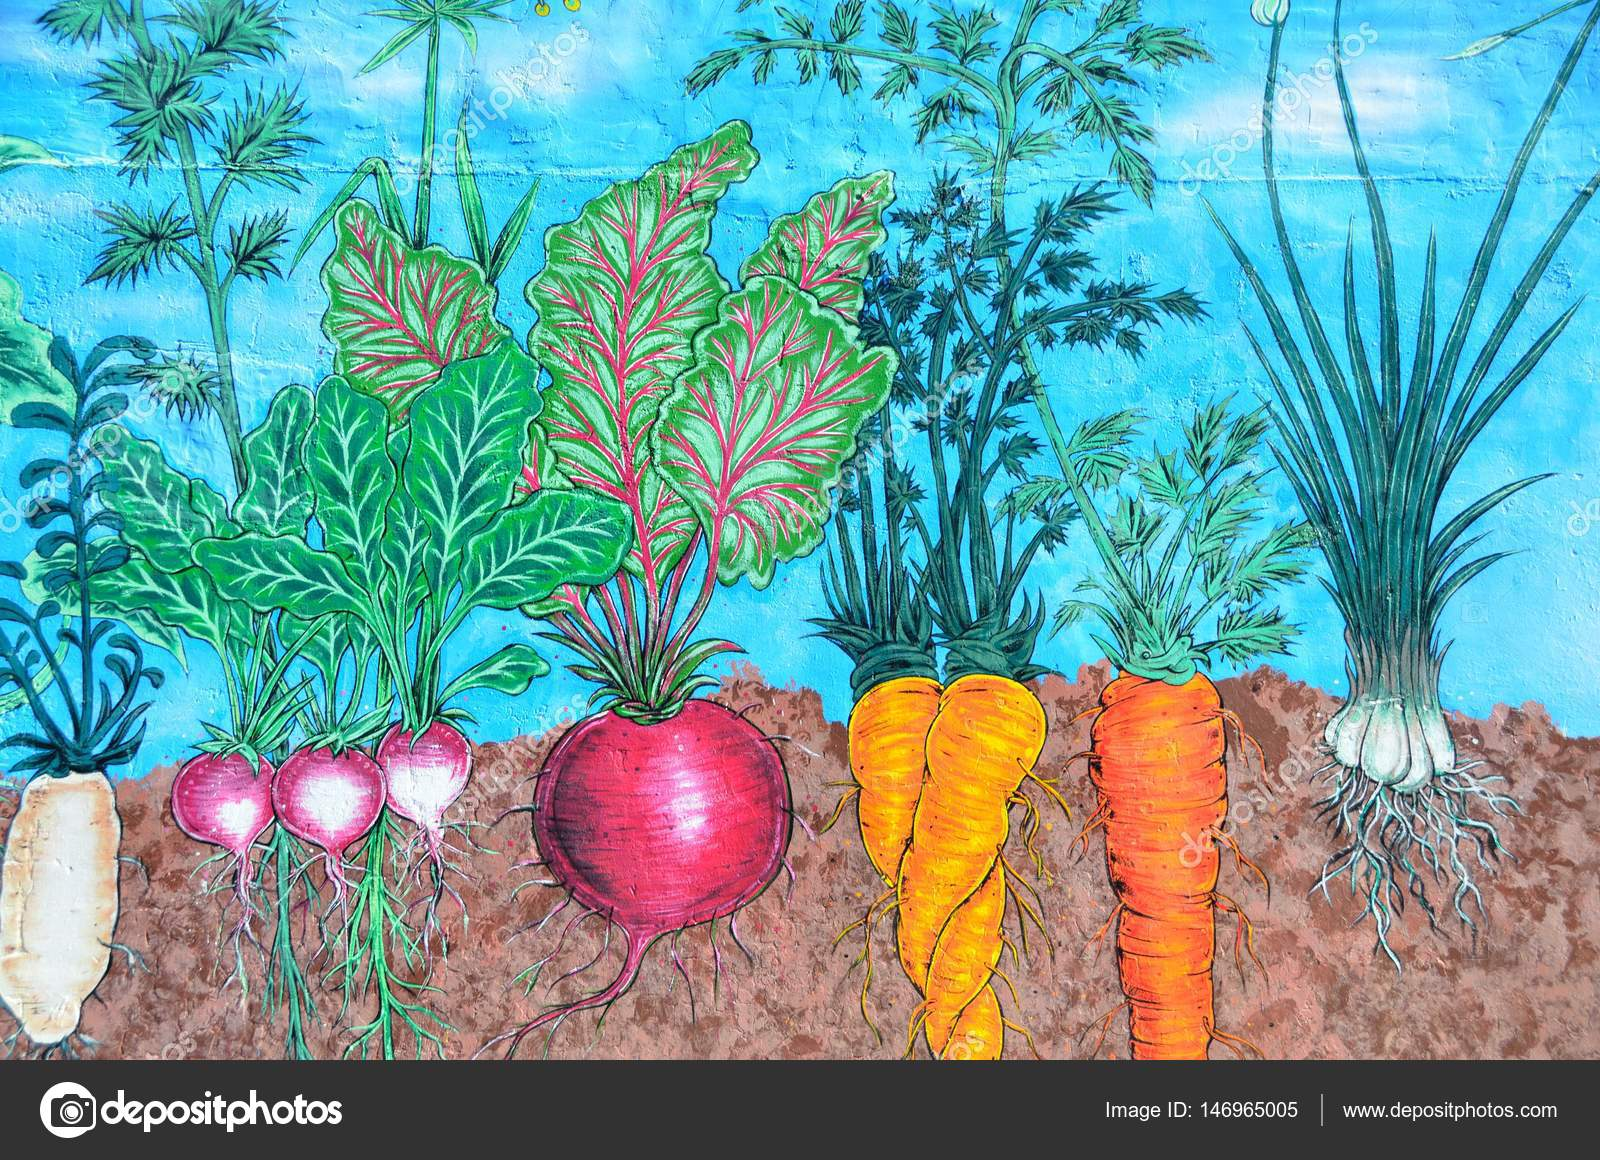 Pleasing Vegetable Garden Mural Stock Editorial Photo C Howdy76 Download Free Architecture Designs Jebrpmadebymaigaardcom